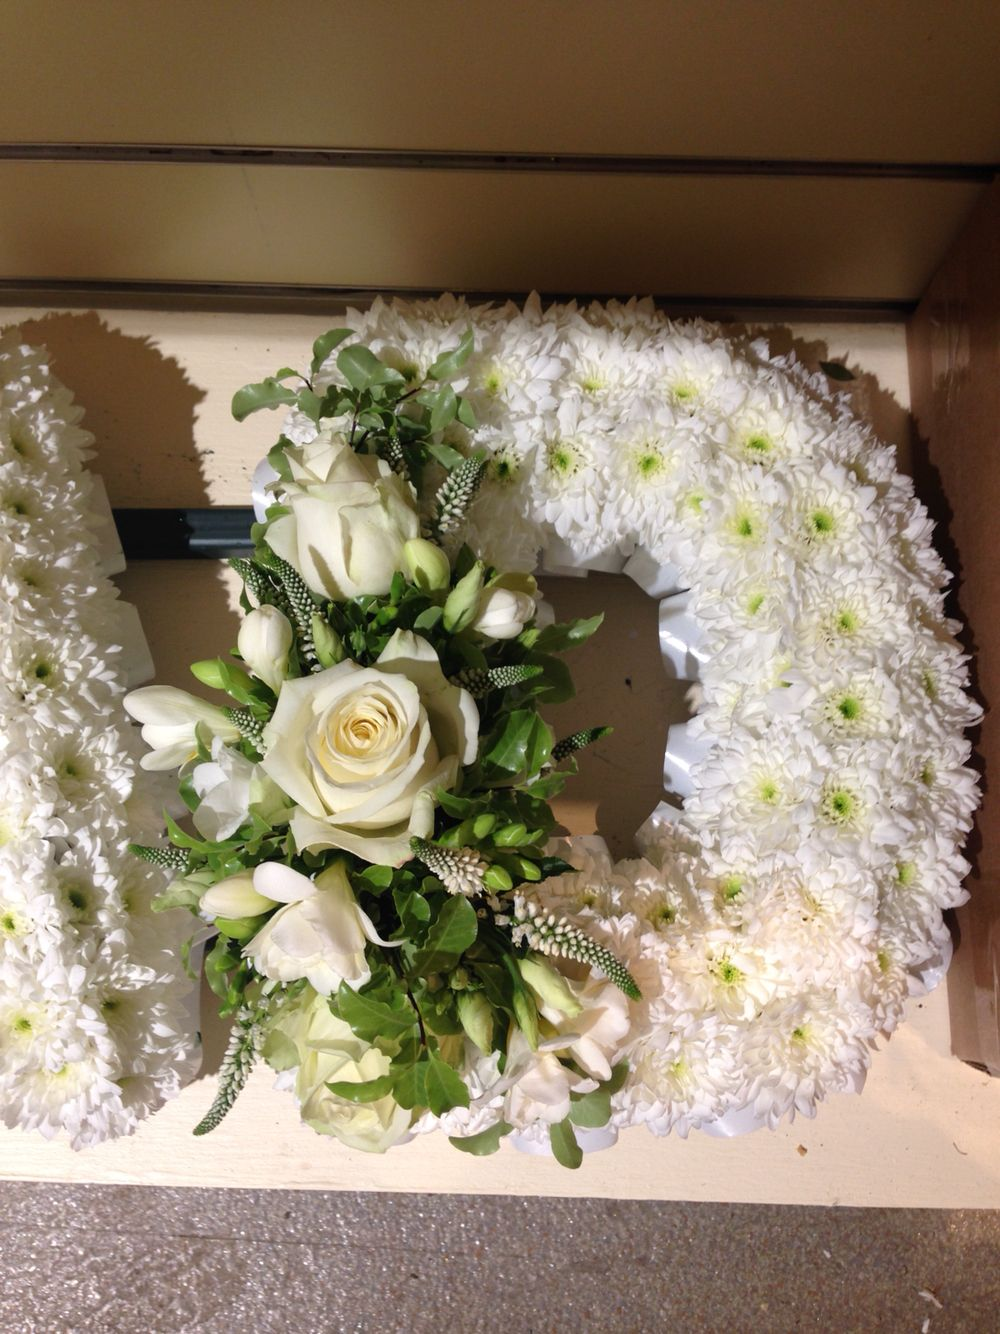 White Based Funeral Letter D With White Ribbon Edge And Large White Spray Funeral Flower Arrangements Flower Arrangements Diy Funeral Flowers